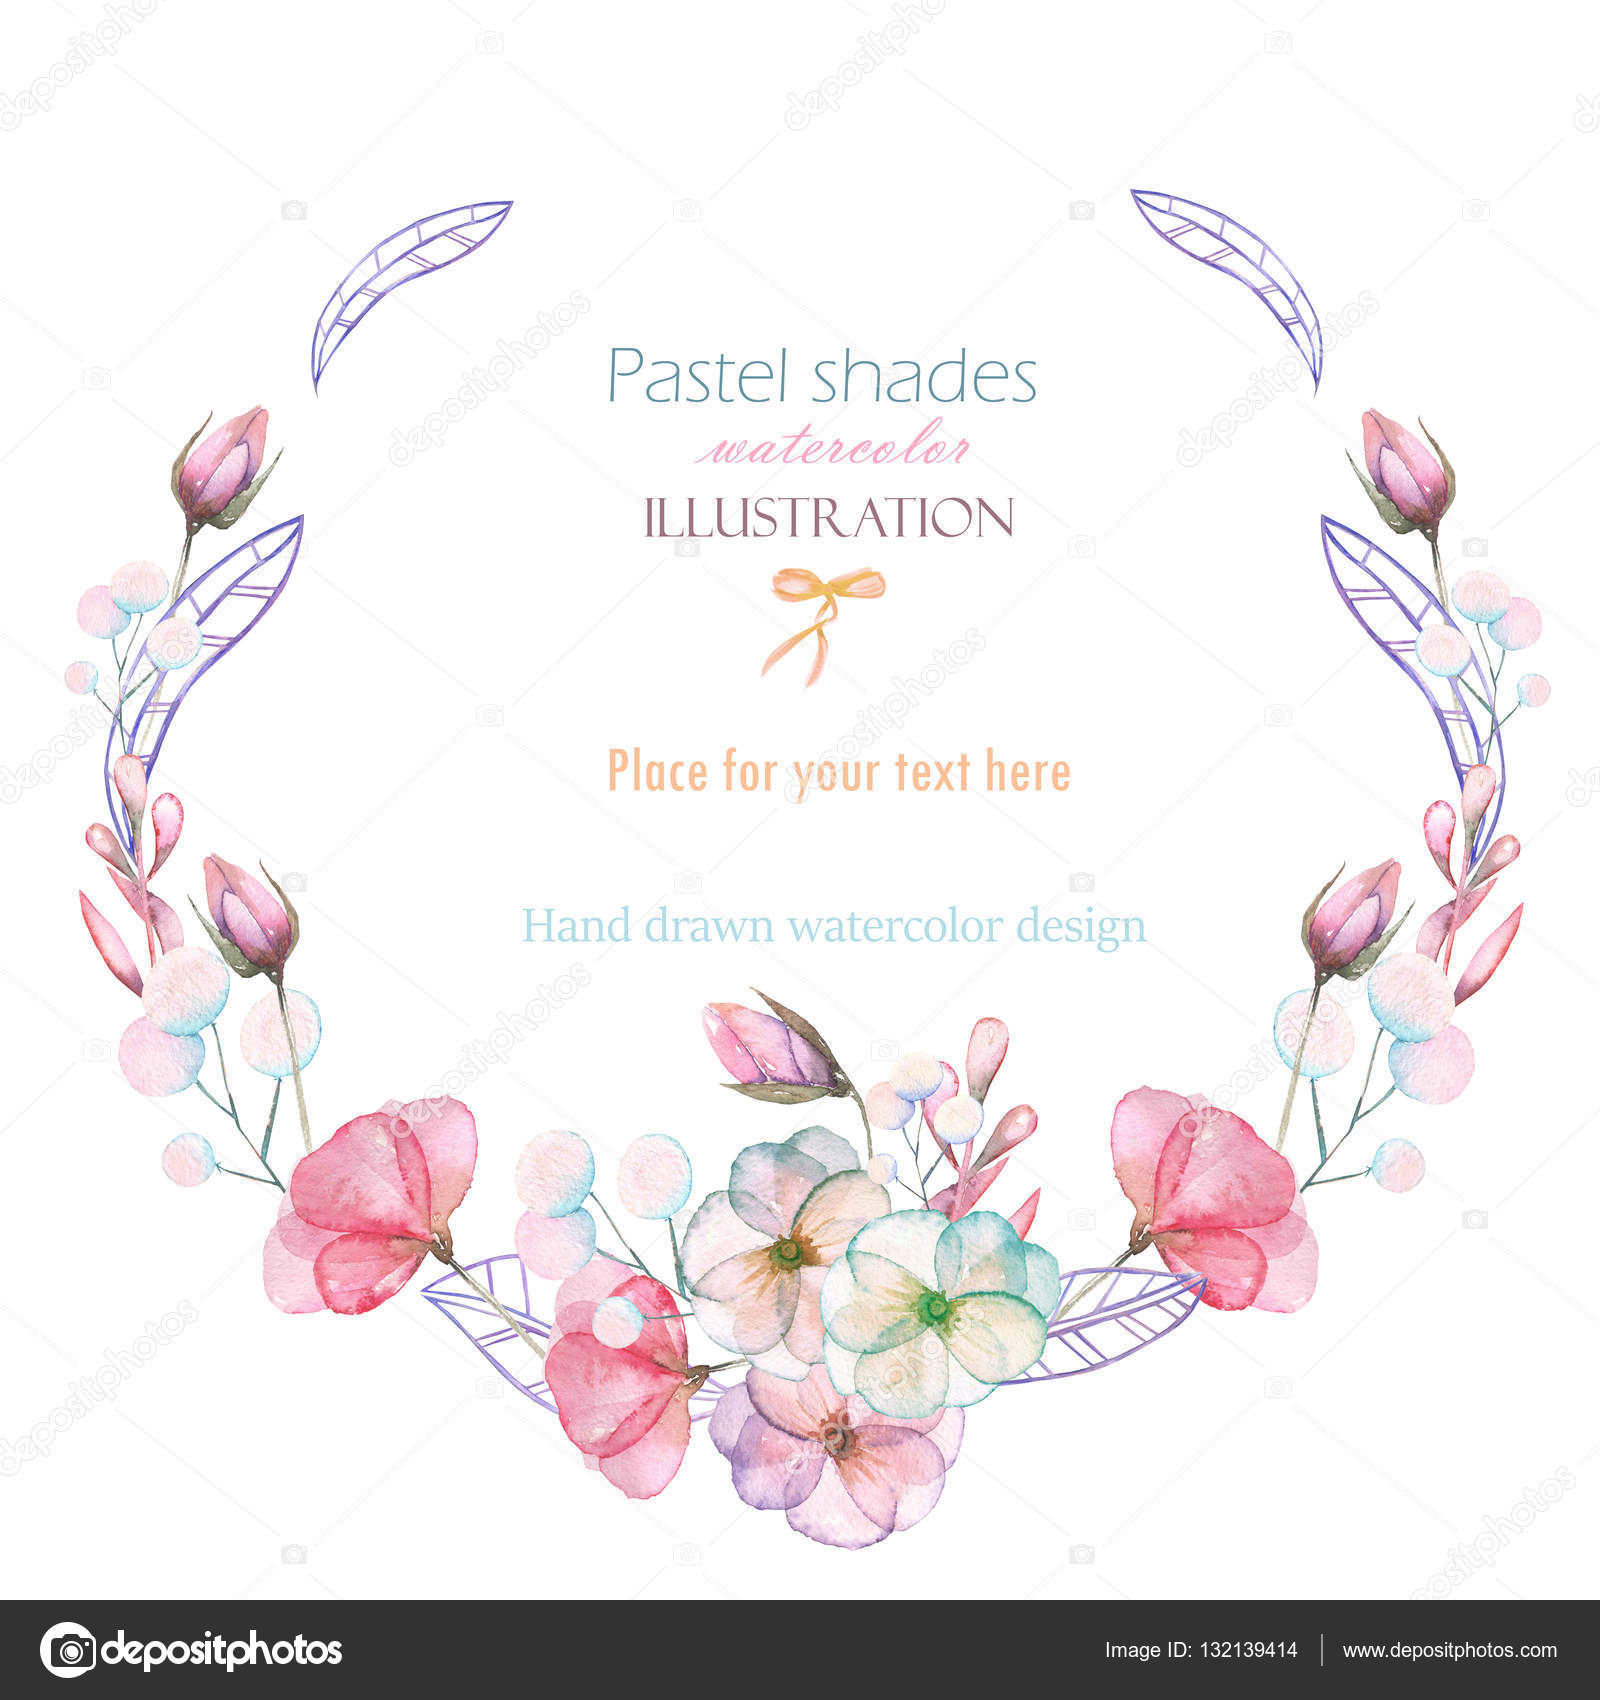 Vector round frame with pink flowers on white background in pastel - Circle Frame Border Wreath With Watercolor Tender Flowers And Leaves In Pastel Shades Hand Drawn On A White Background For Invitation Card Decoration